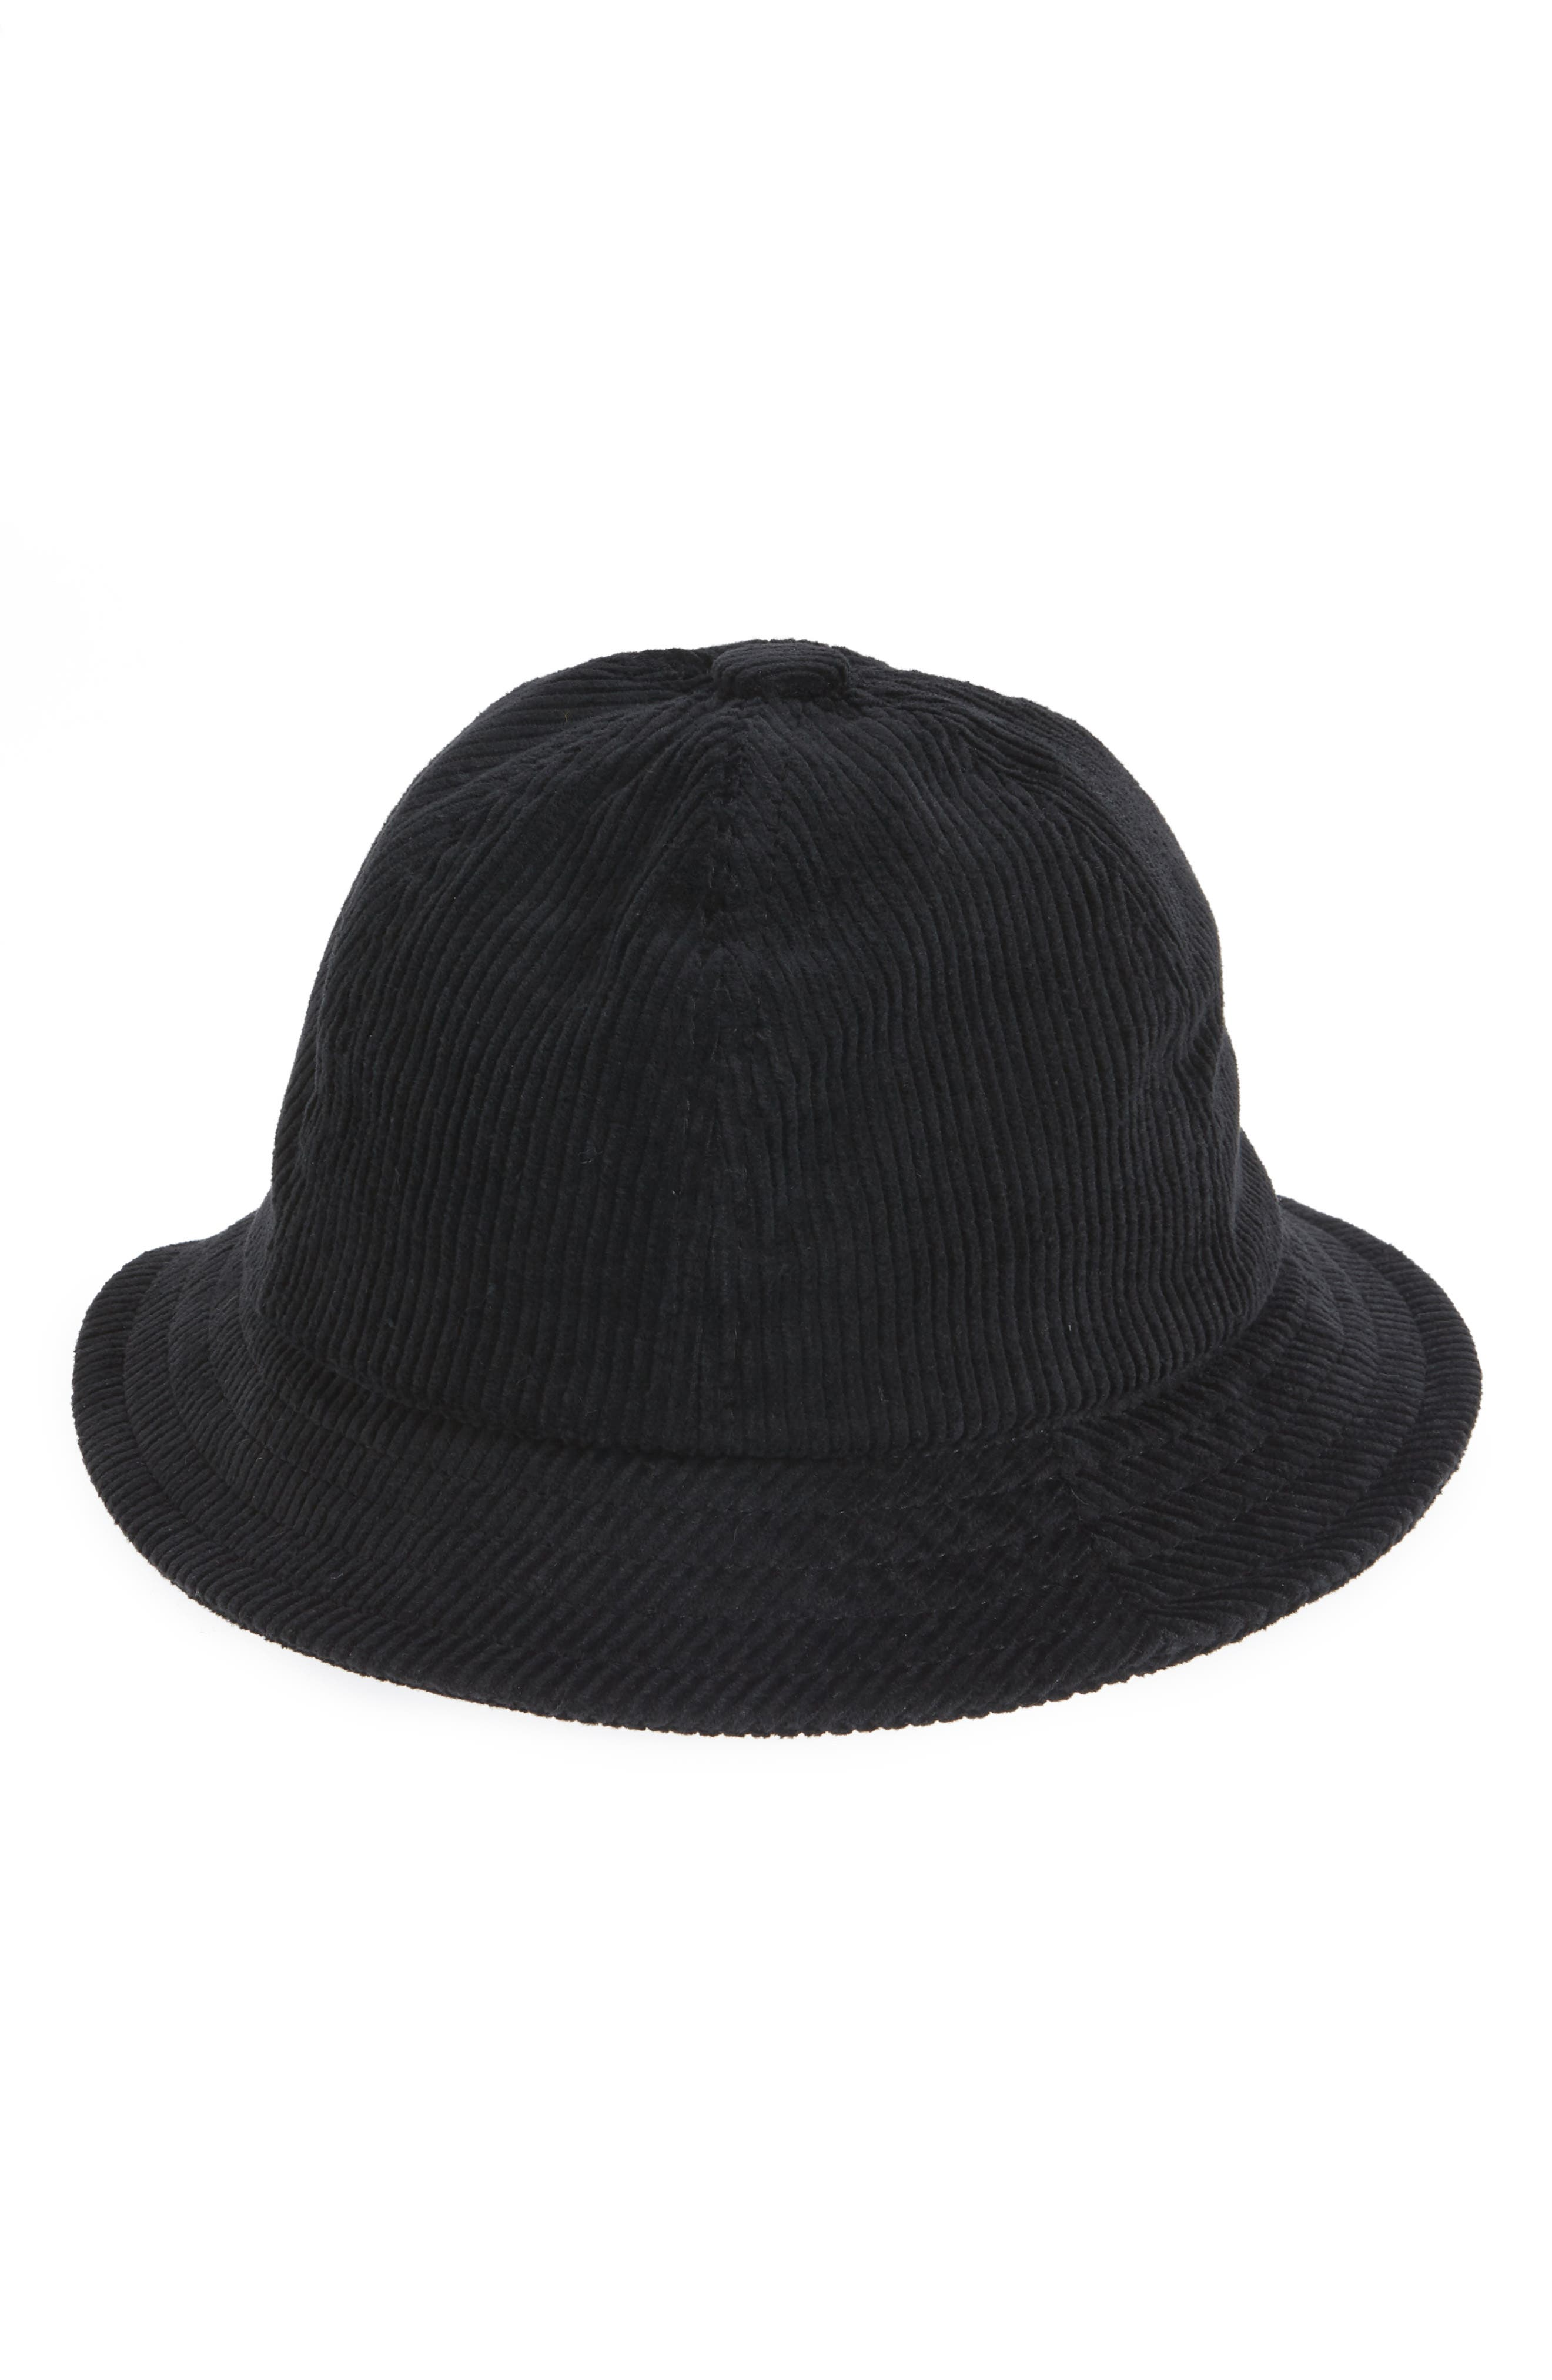 Essex Bucket Hat,                             Main thumbnail 1, color,                             BLACK/ BLACK